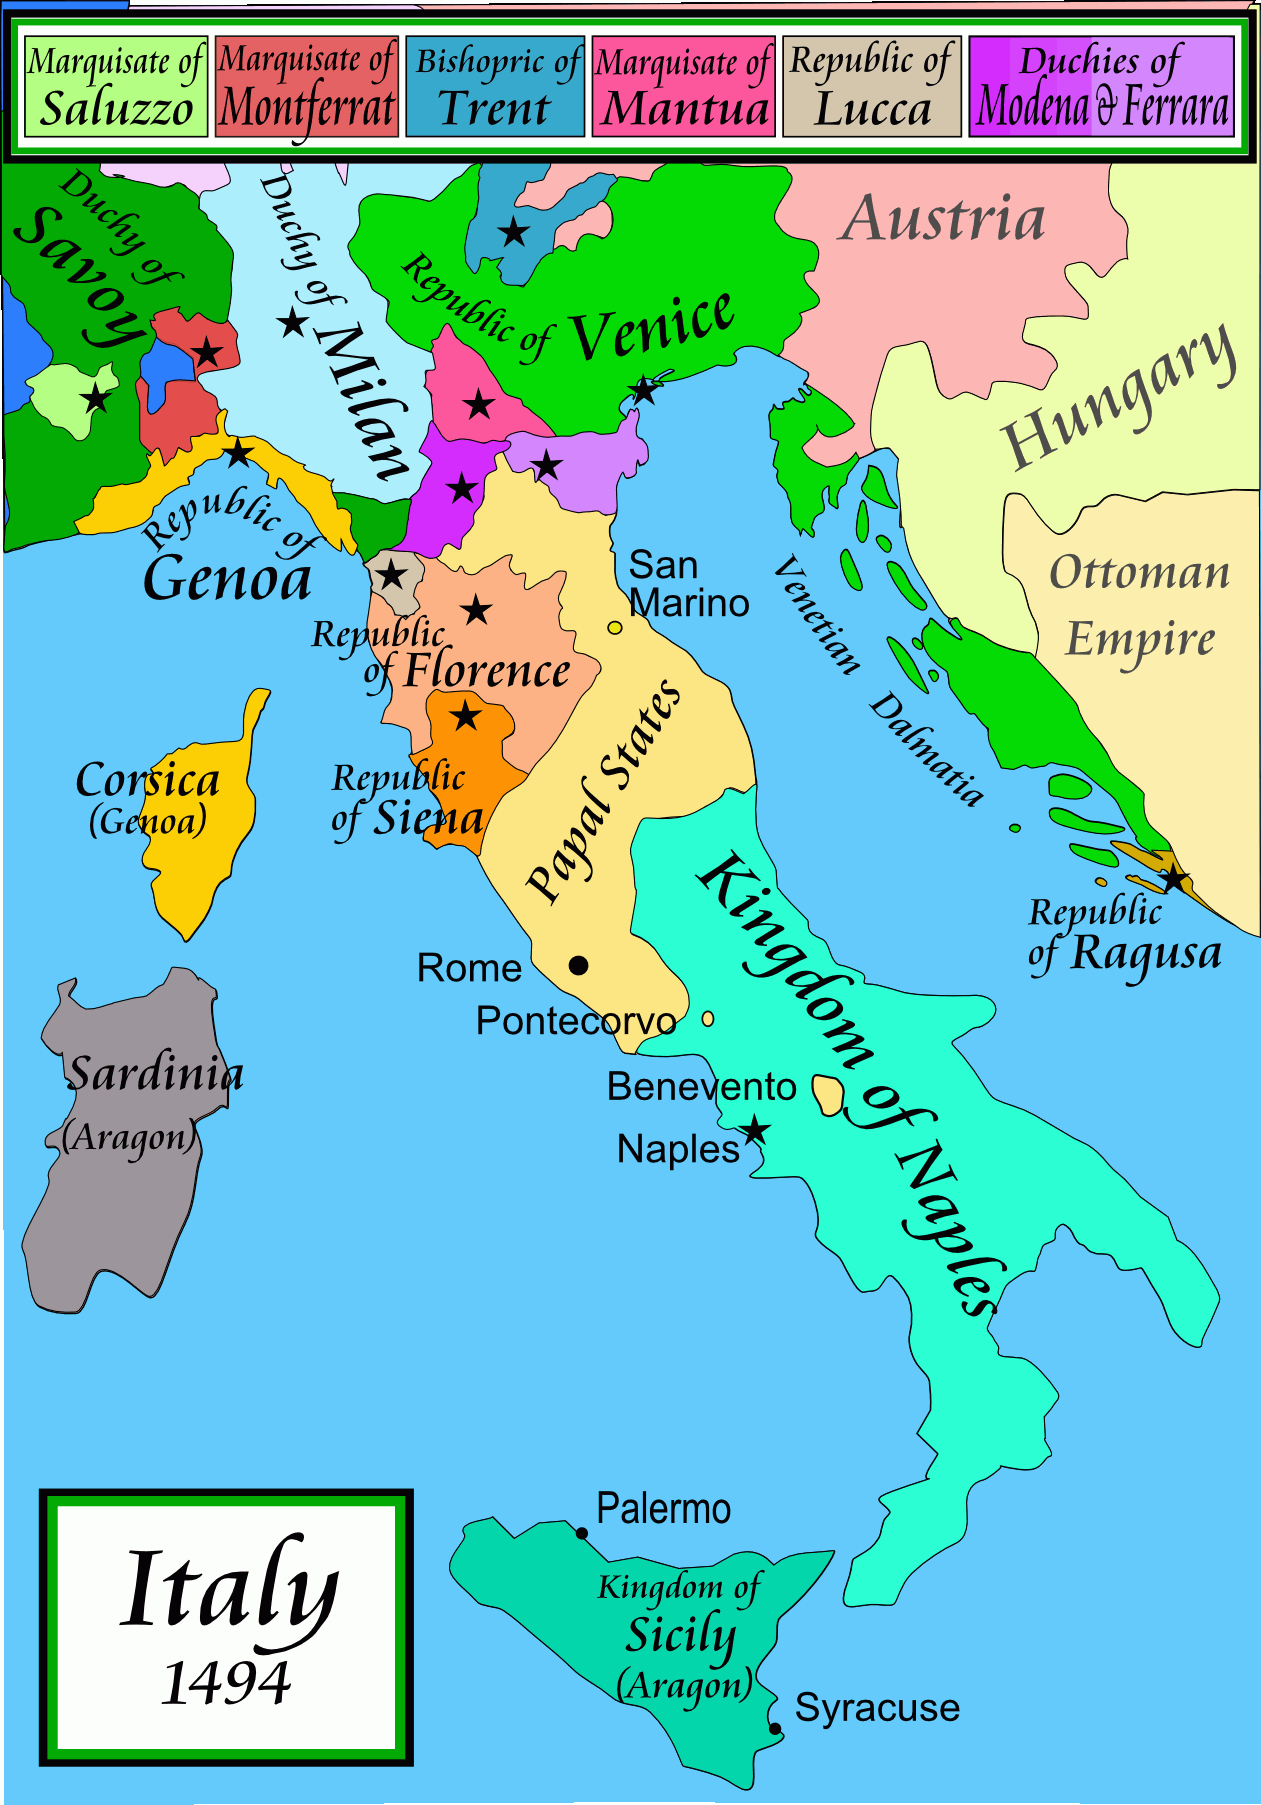 Duchy of Modena and Reggio Wiki Atlas of World History Wiki